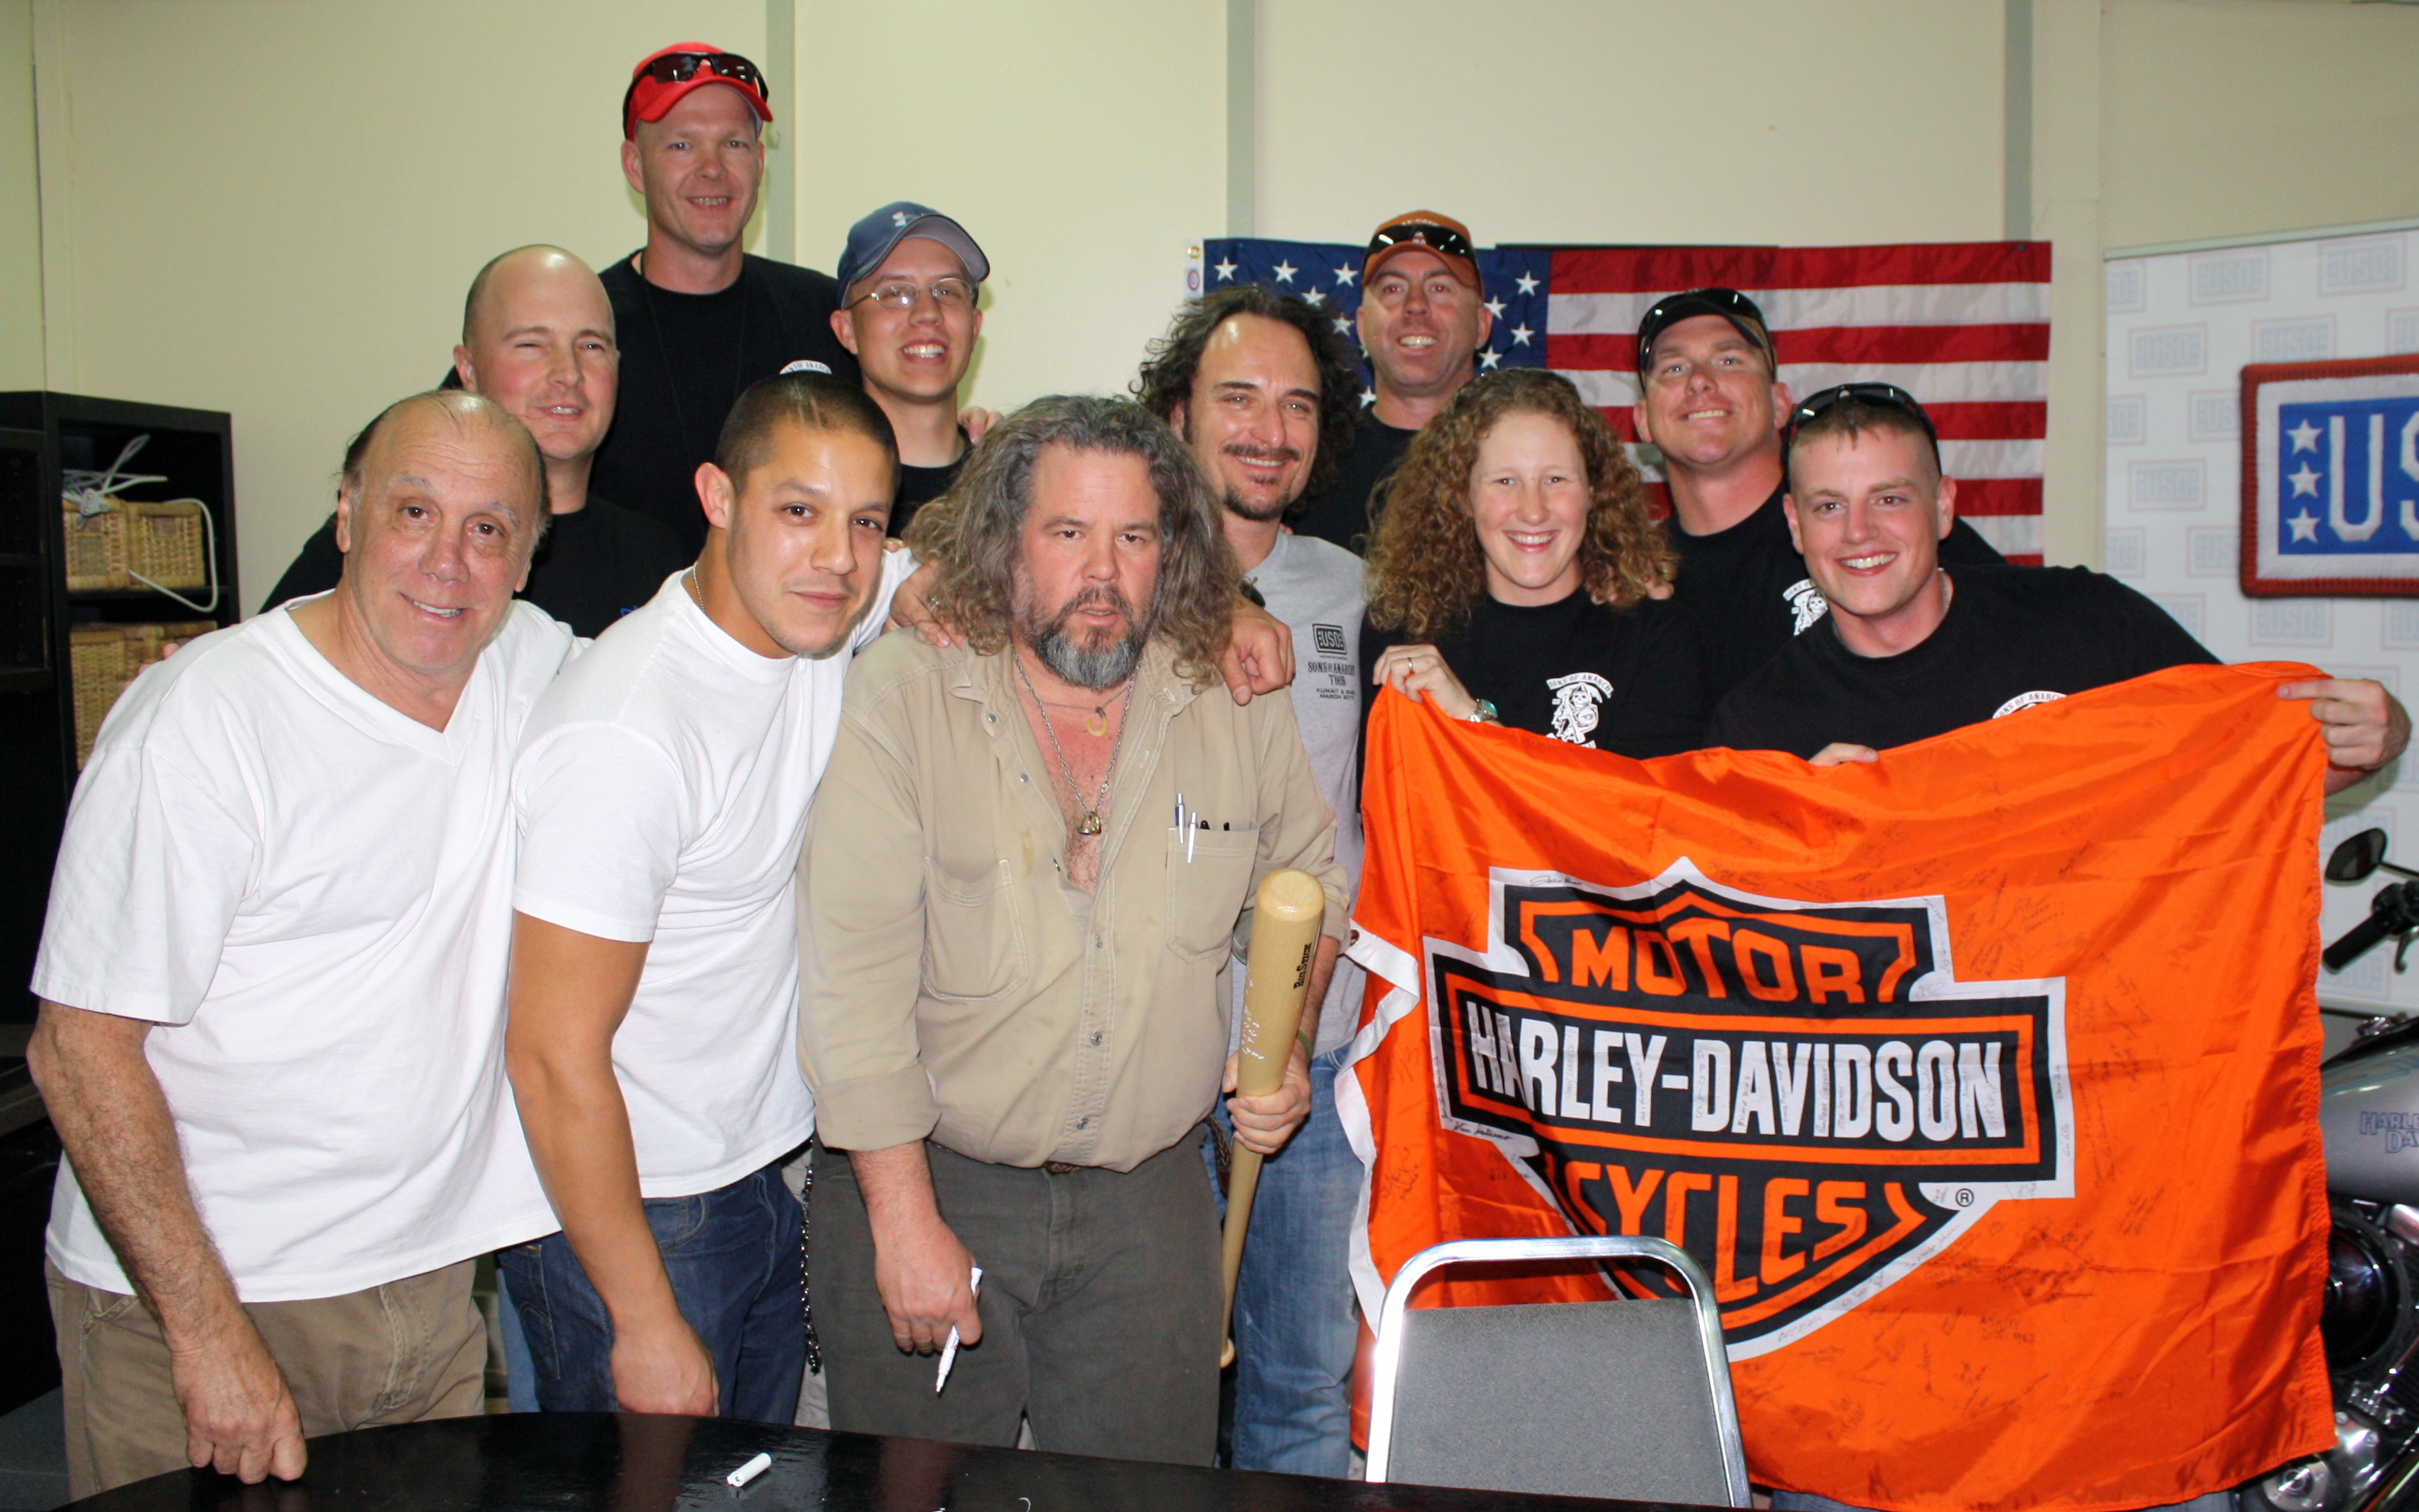 Sons of Anarchy cast members show off a Harley Davidson banner with